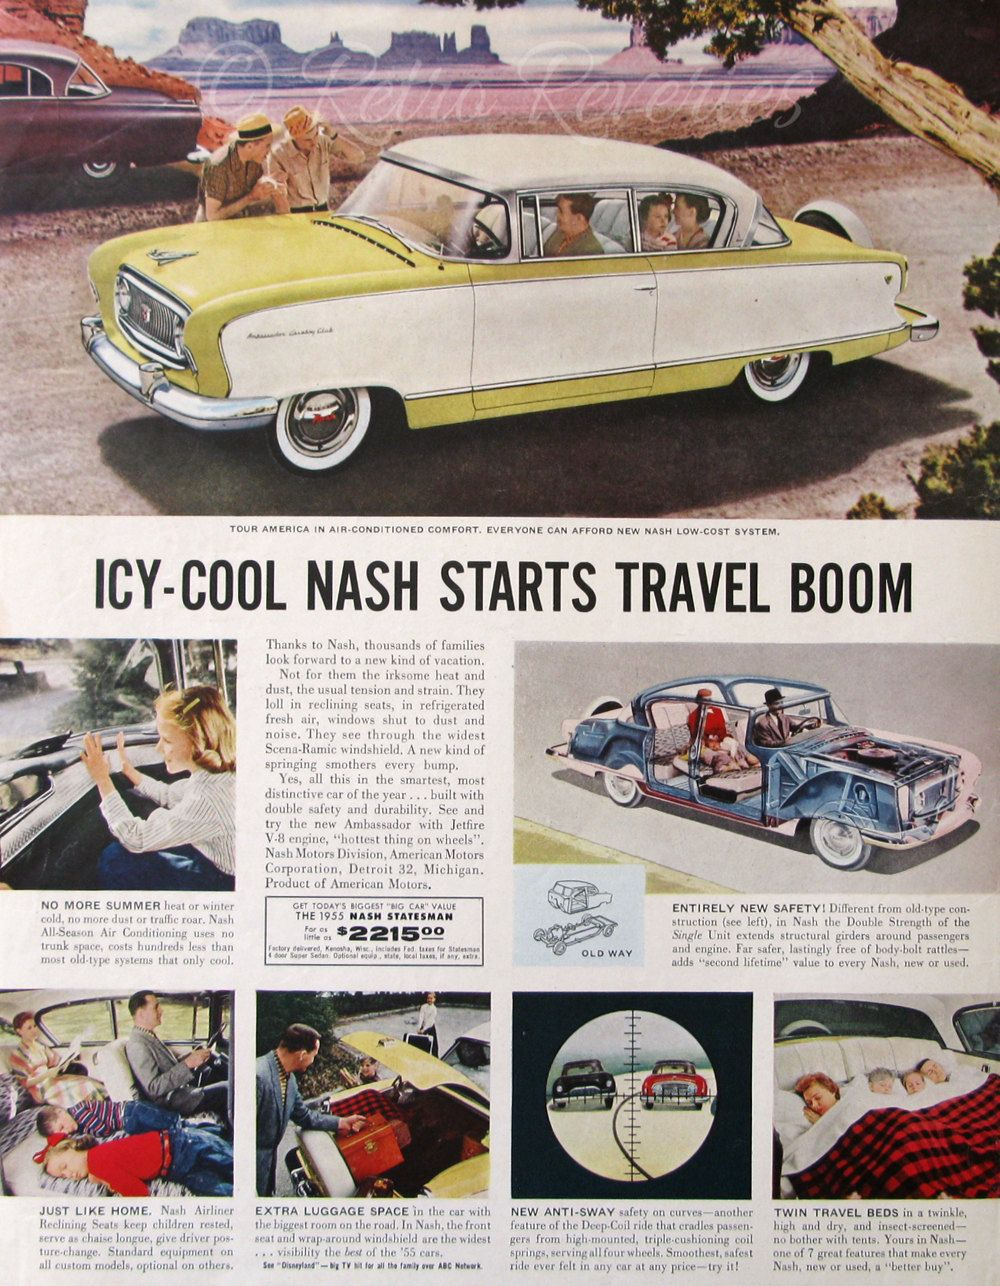 Pin by Chris G on Vintage Car Ads | Vintage cars, Vintage cars 1950s, Old  american cars